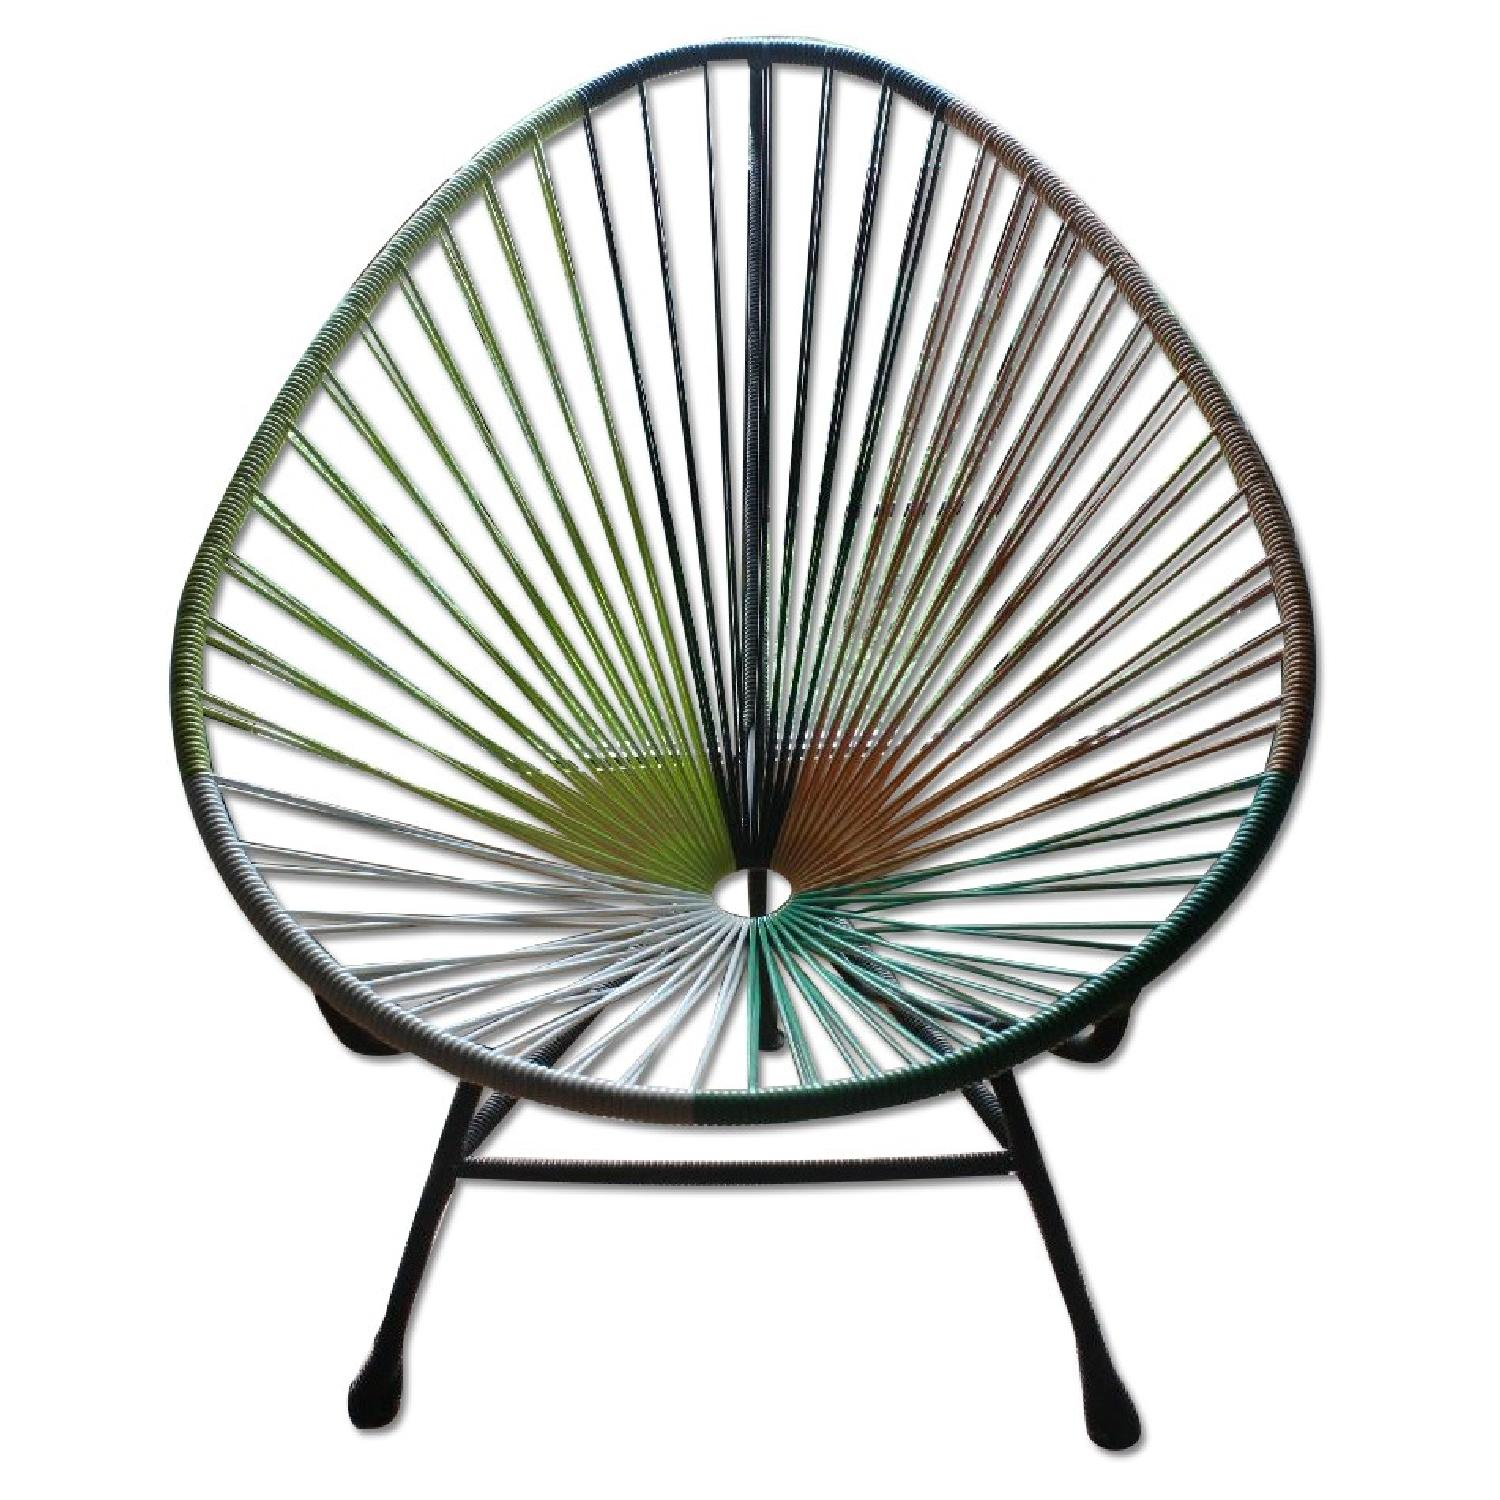 Acapulco chair cb2 - Cb2 Acapulco Accent Chair